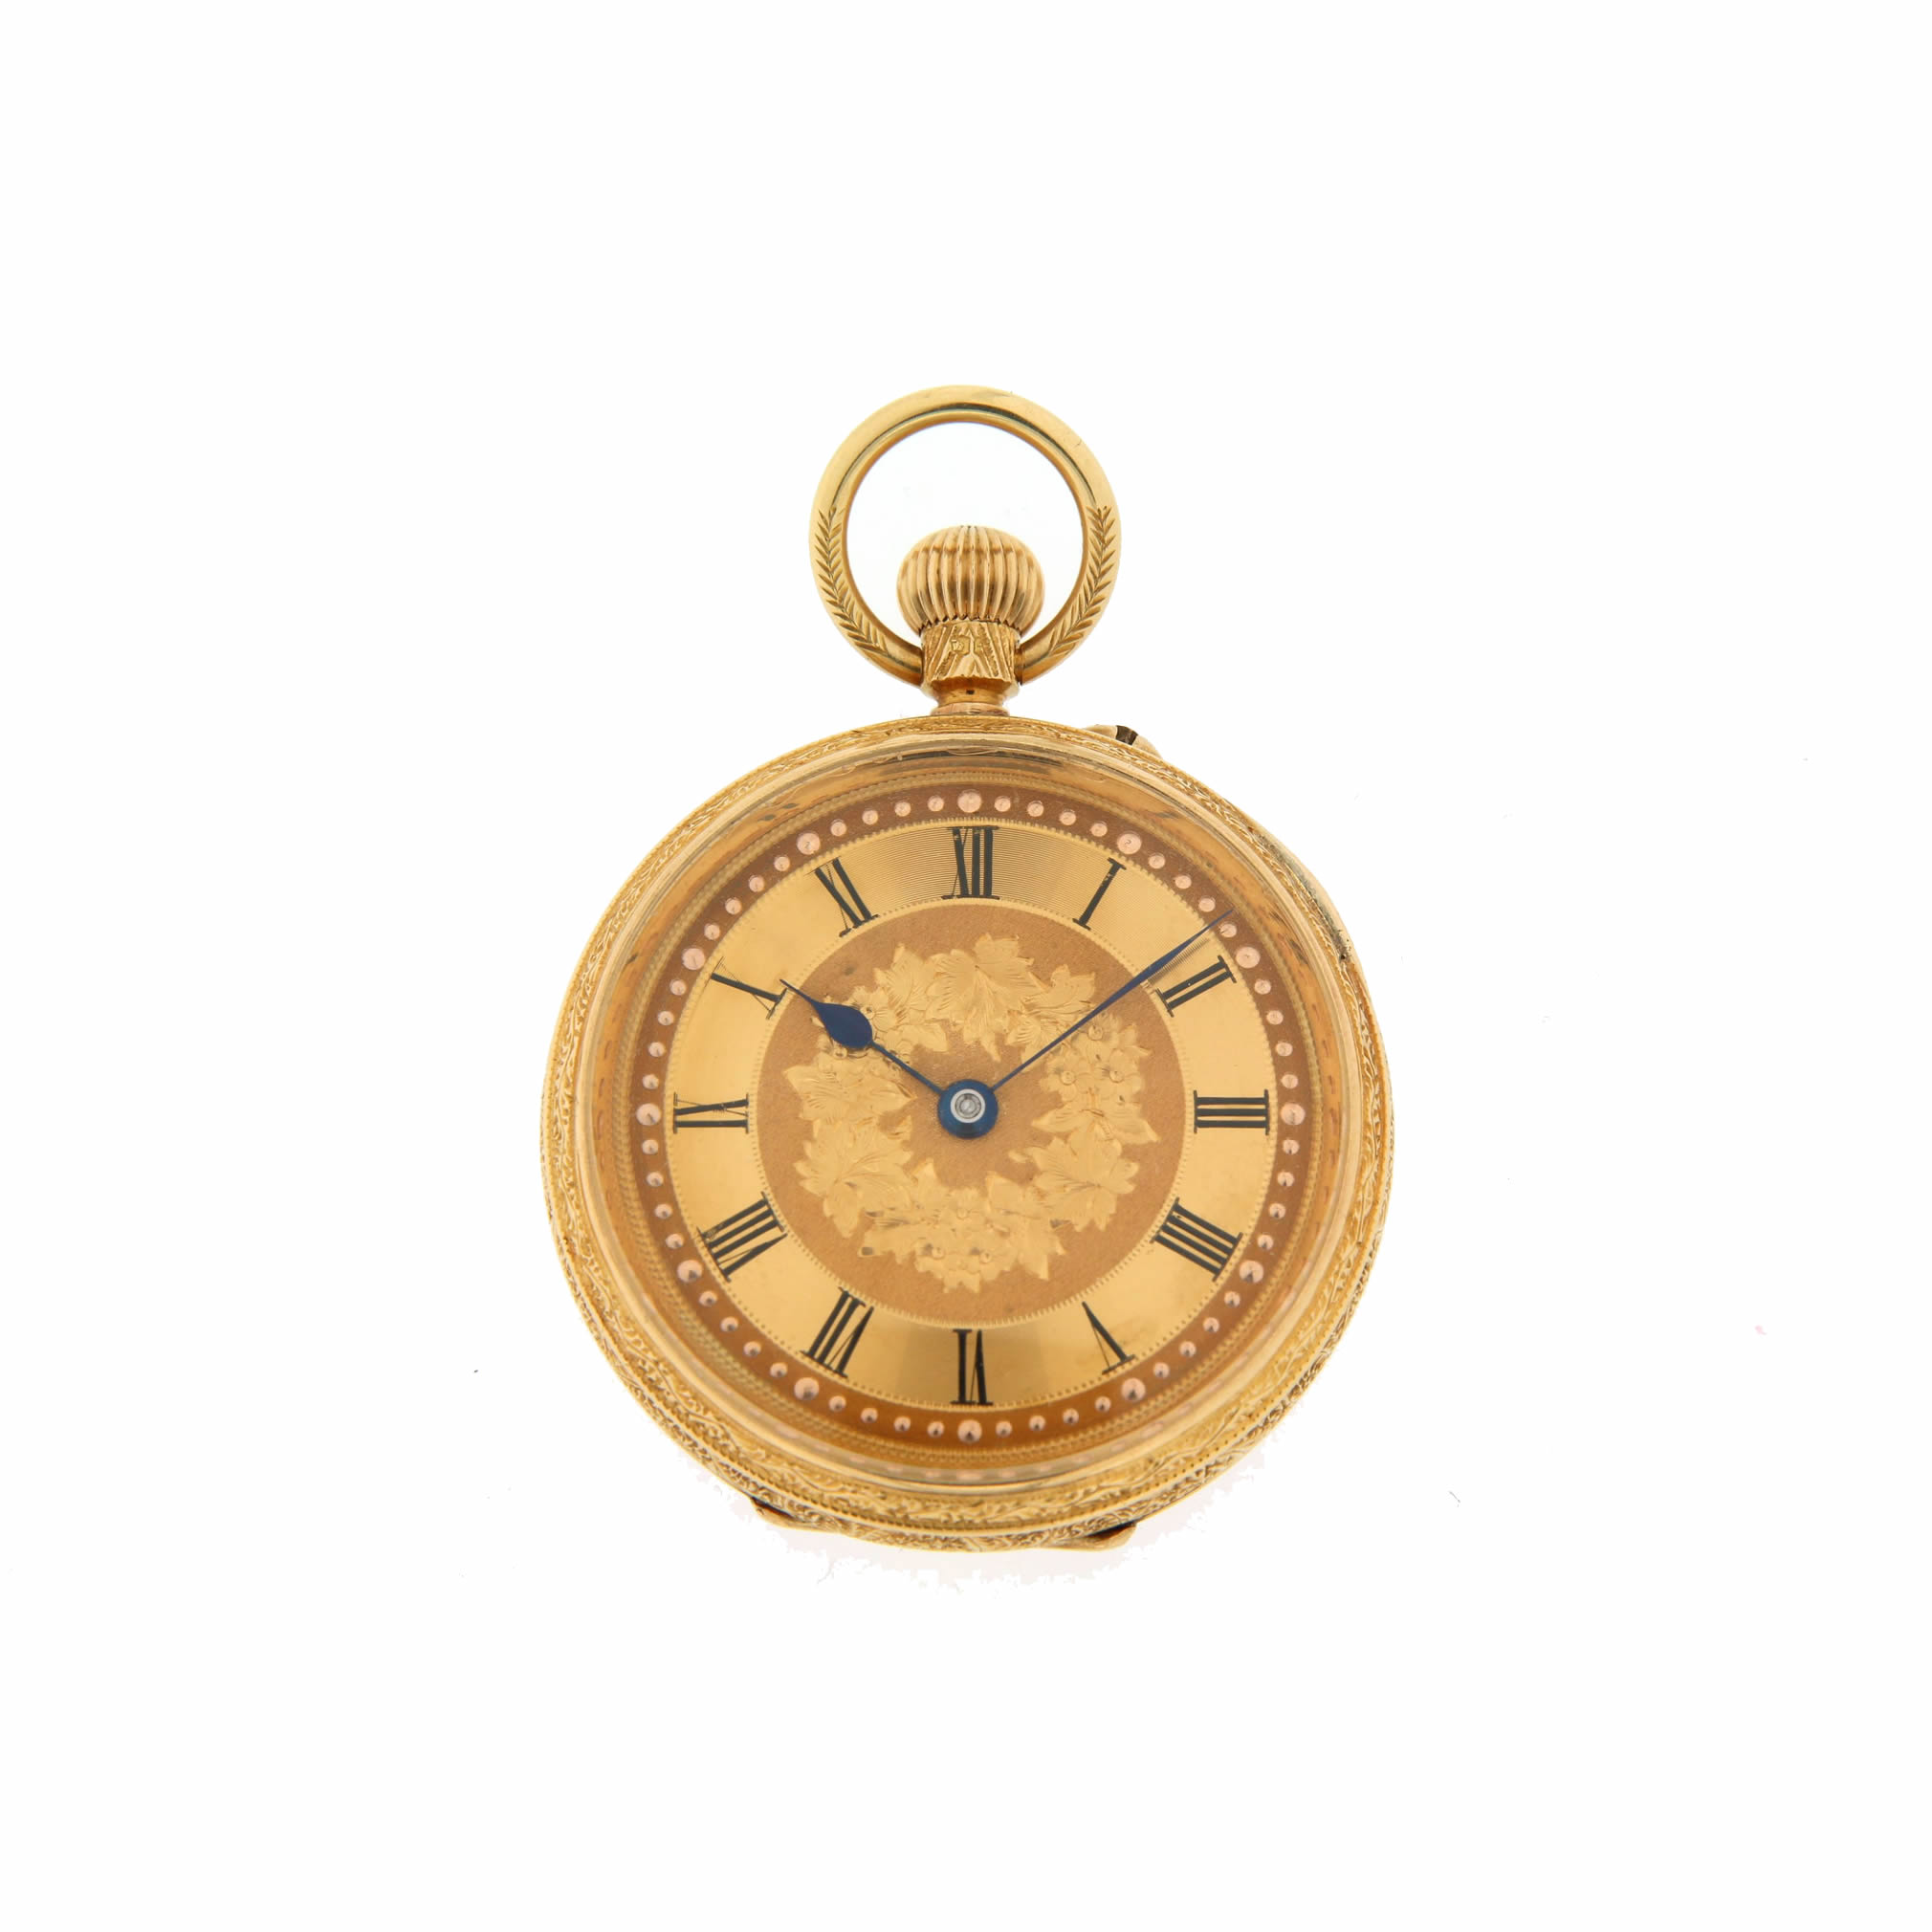 18ct gold fob 151207